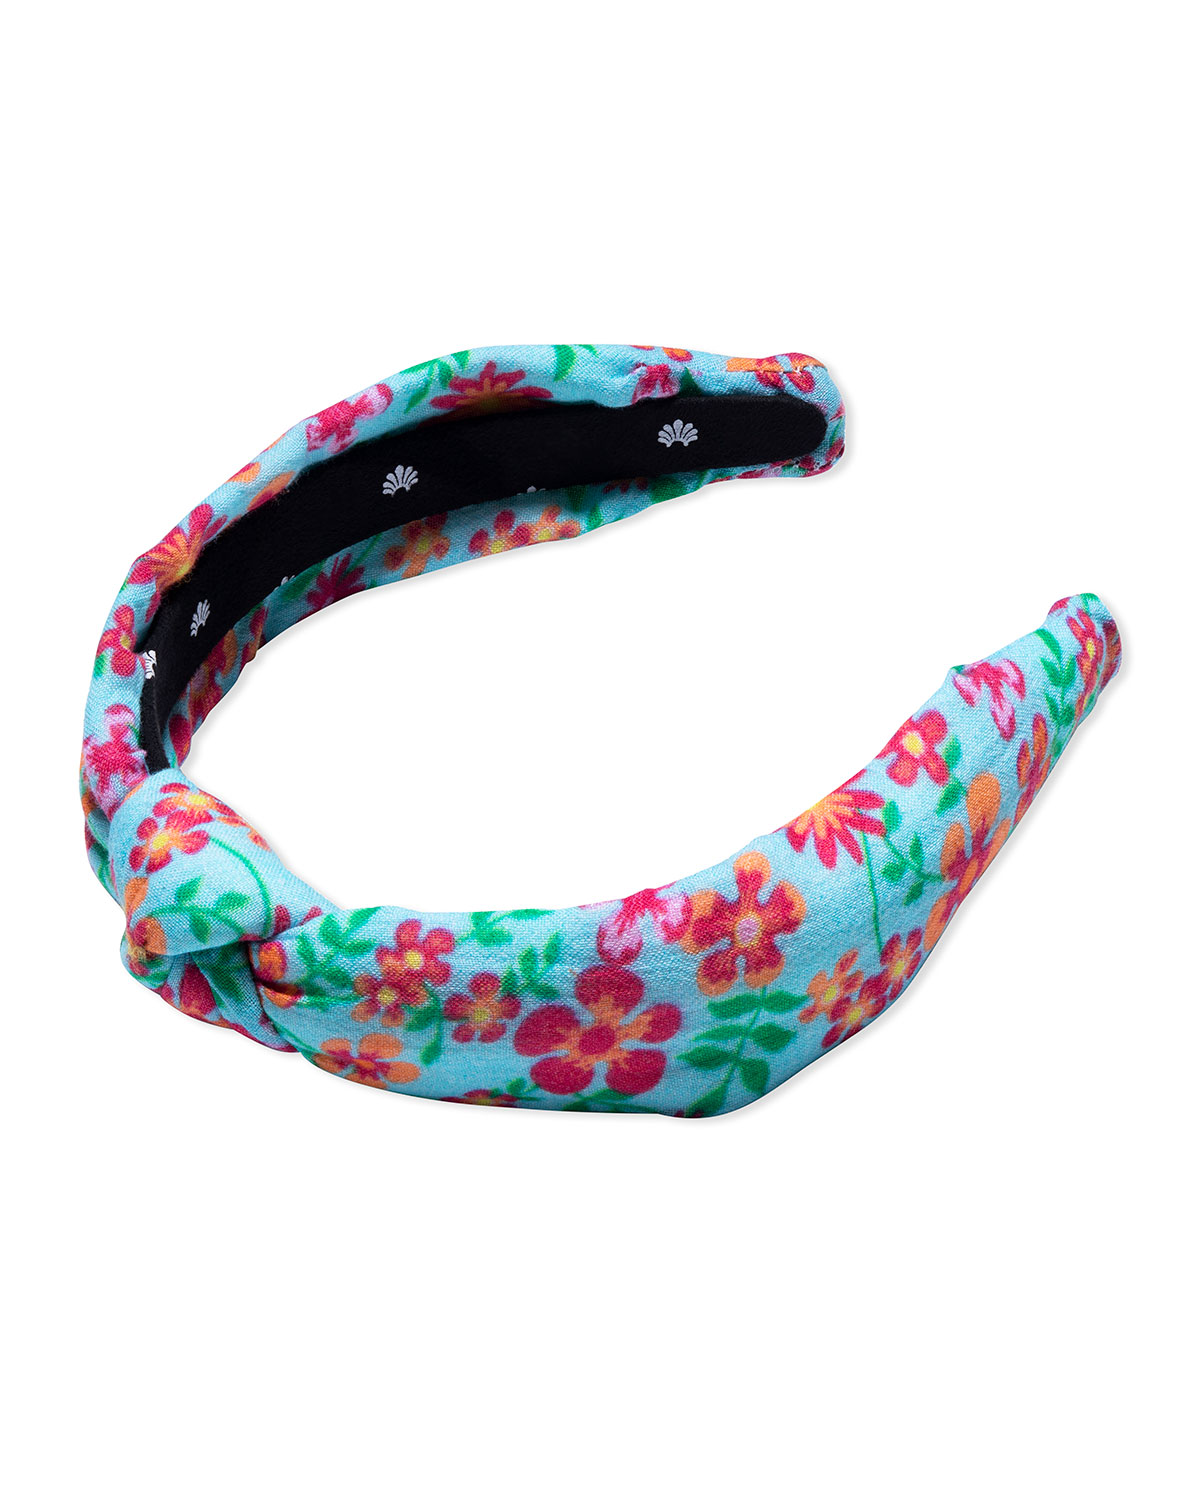 x Solid and Striped Floral Knotted Headband